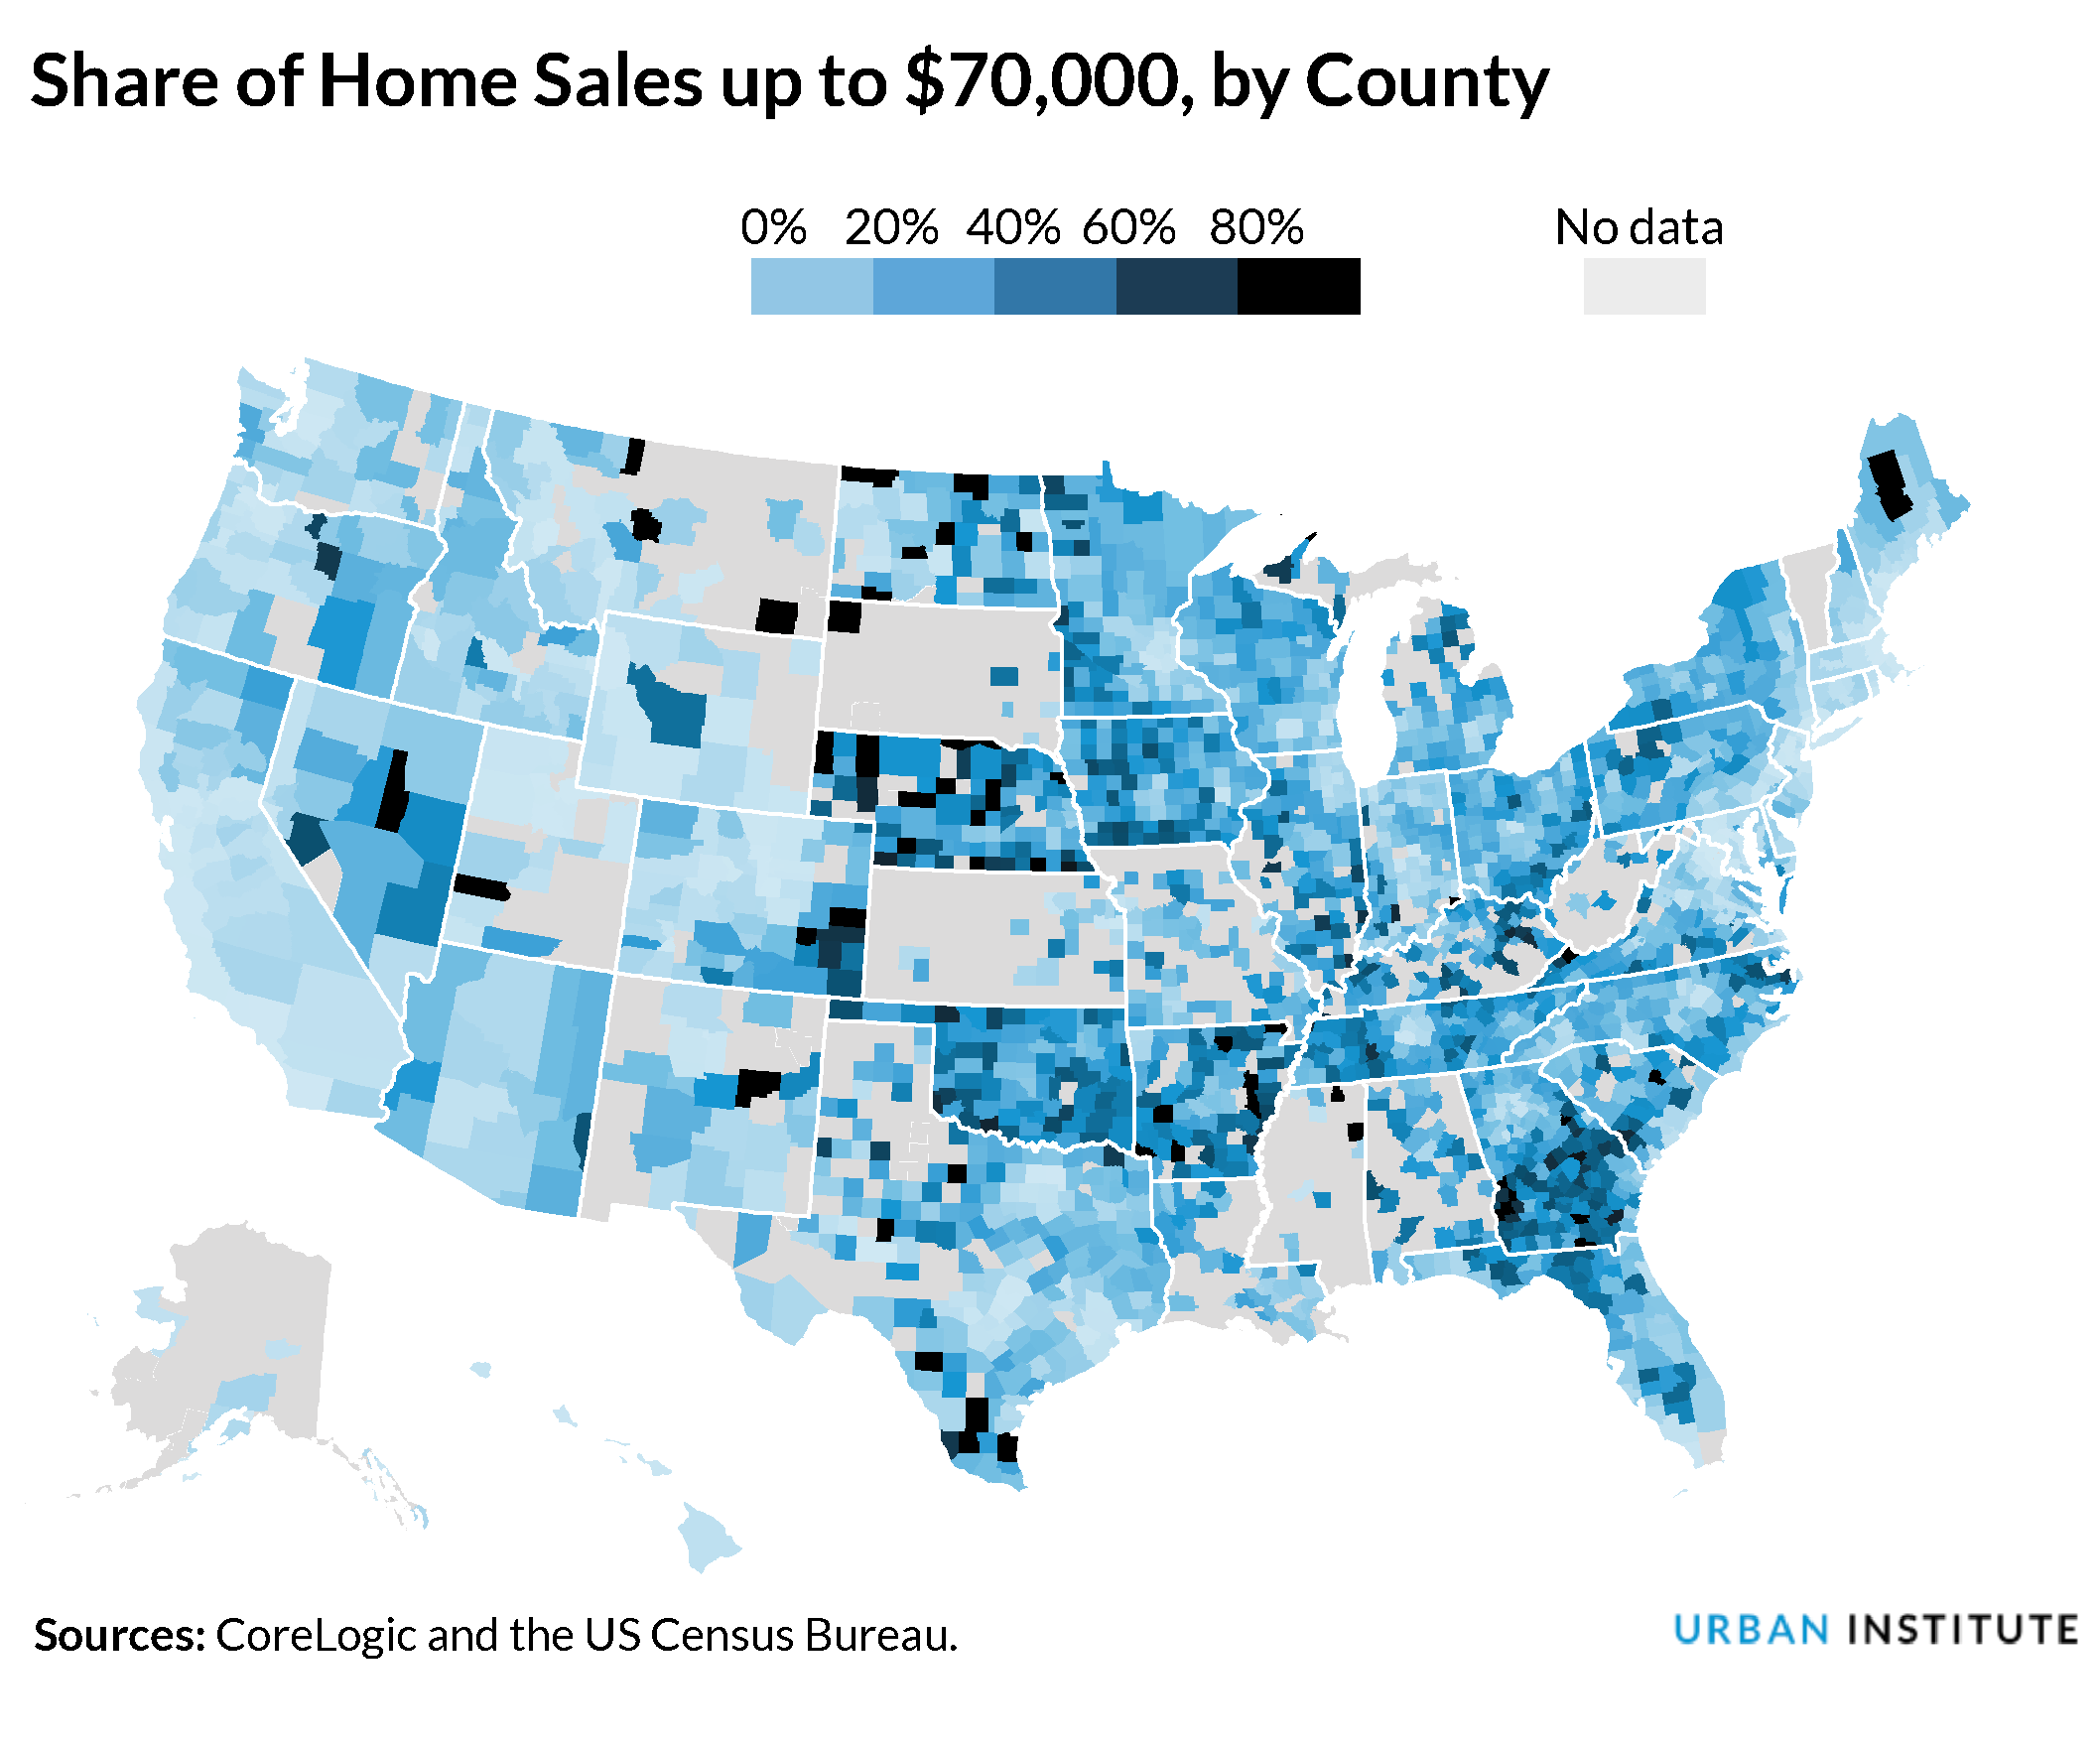 share of home sales up to 70K by county